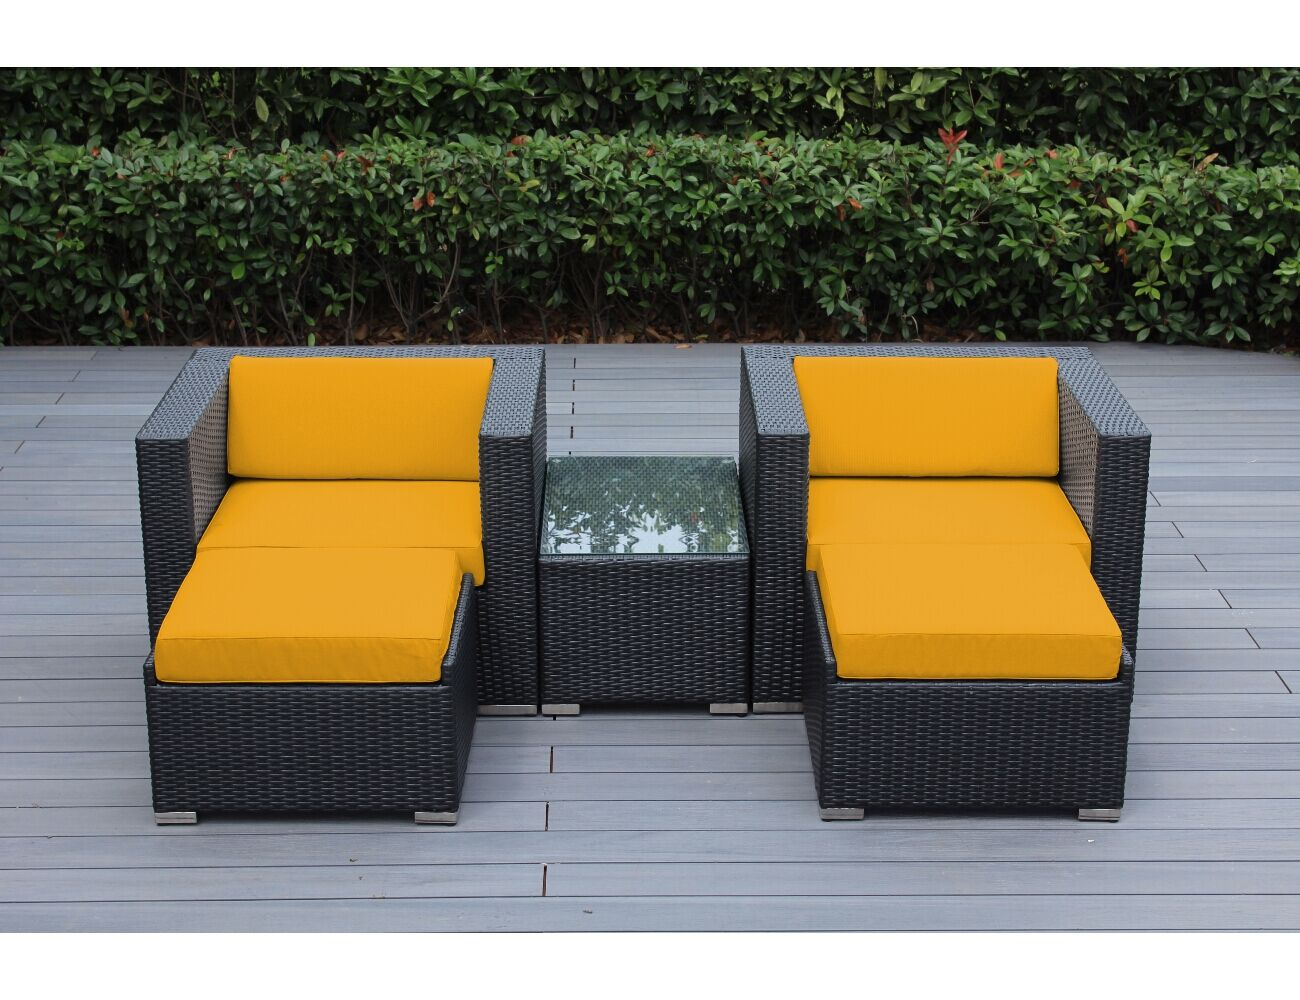 Baril 5 Piece Conservation Set with Cushions Fabric: Sunbrella Sunflower Yellow, Color: Black